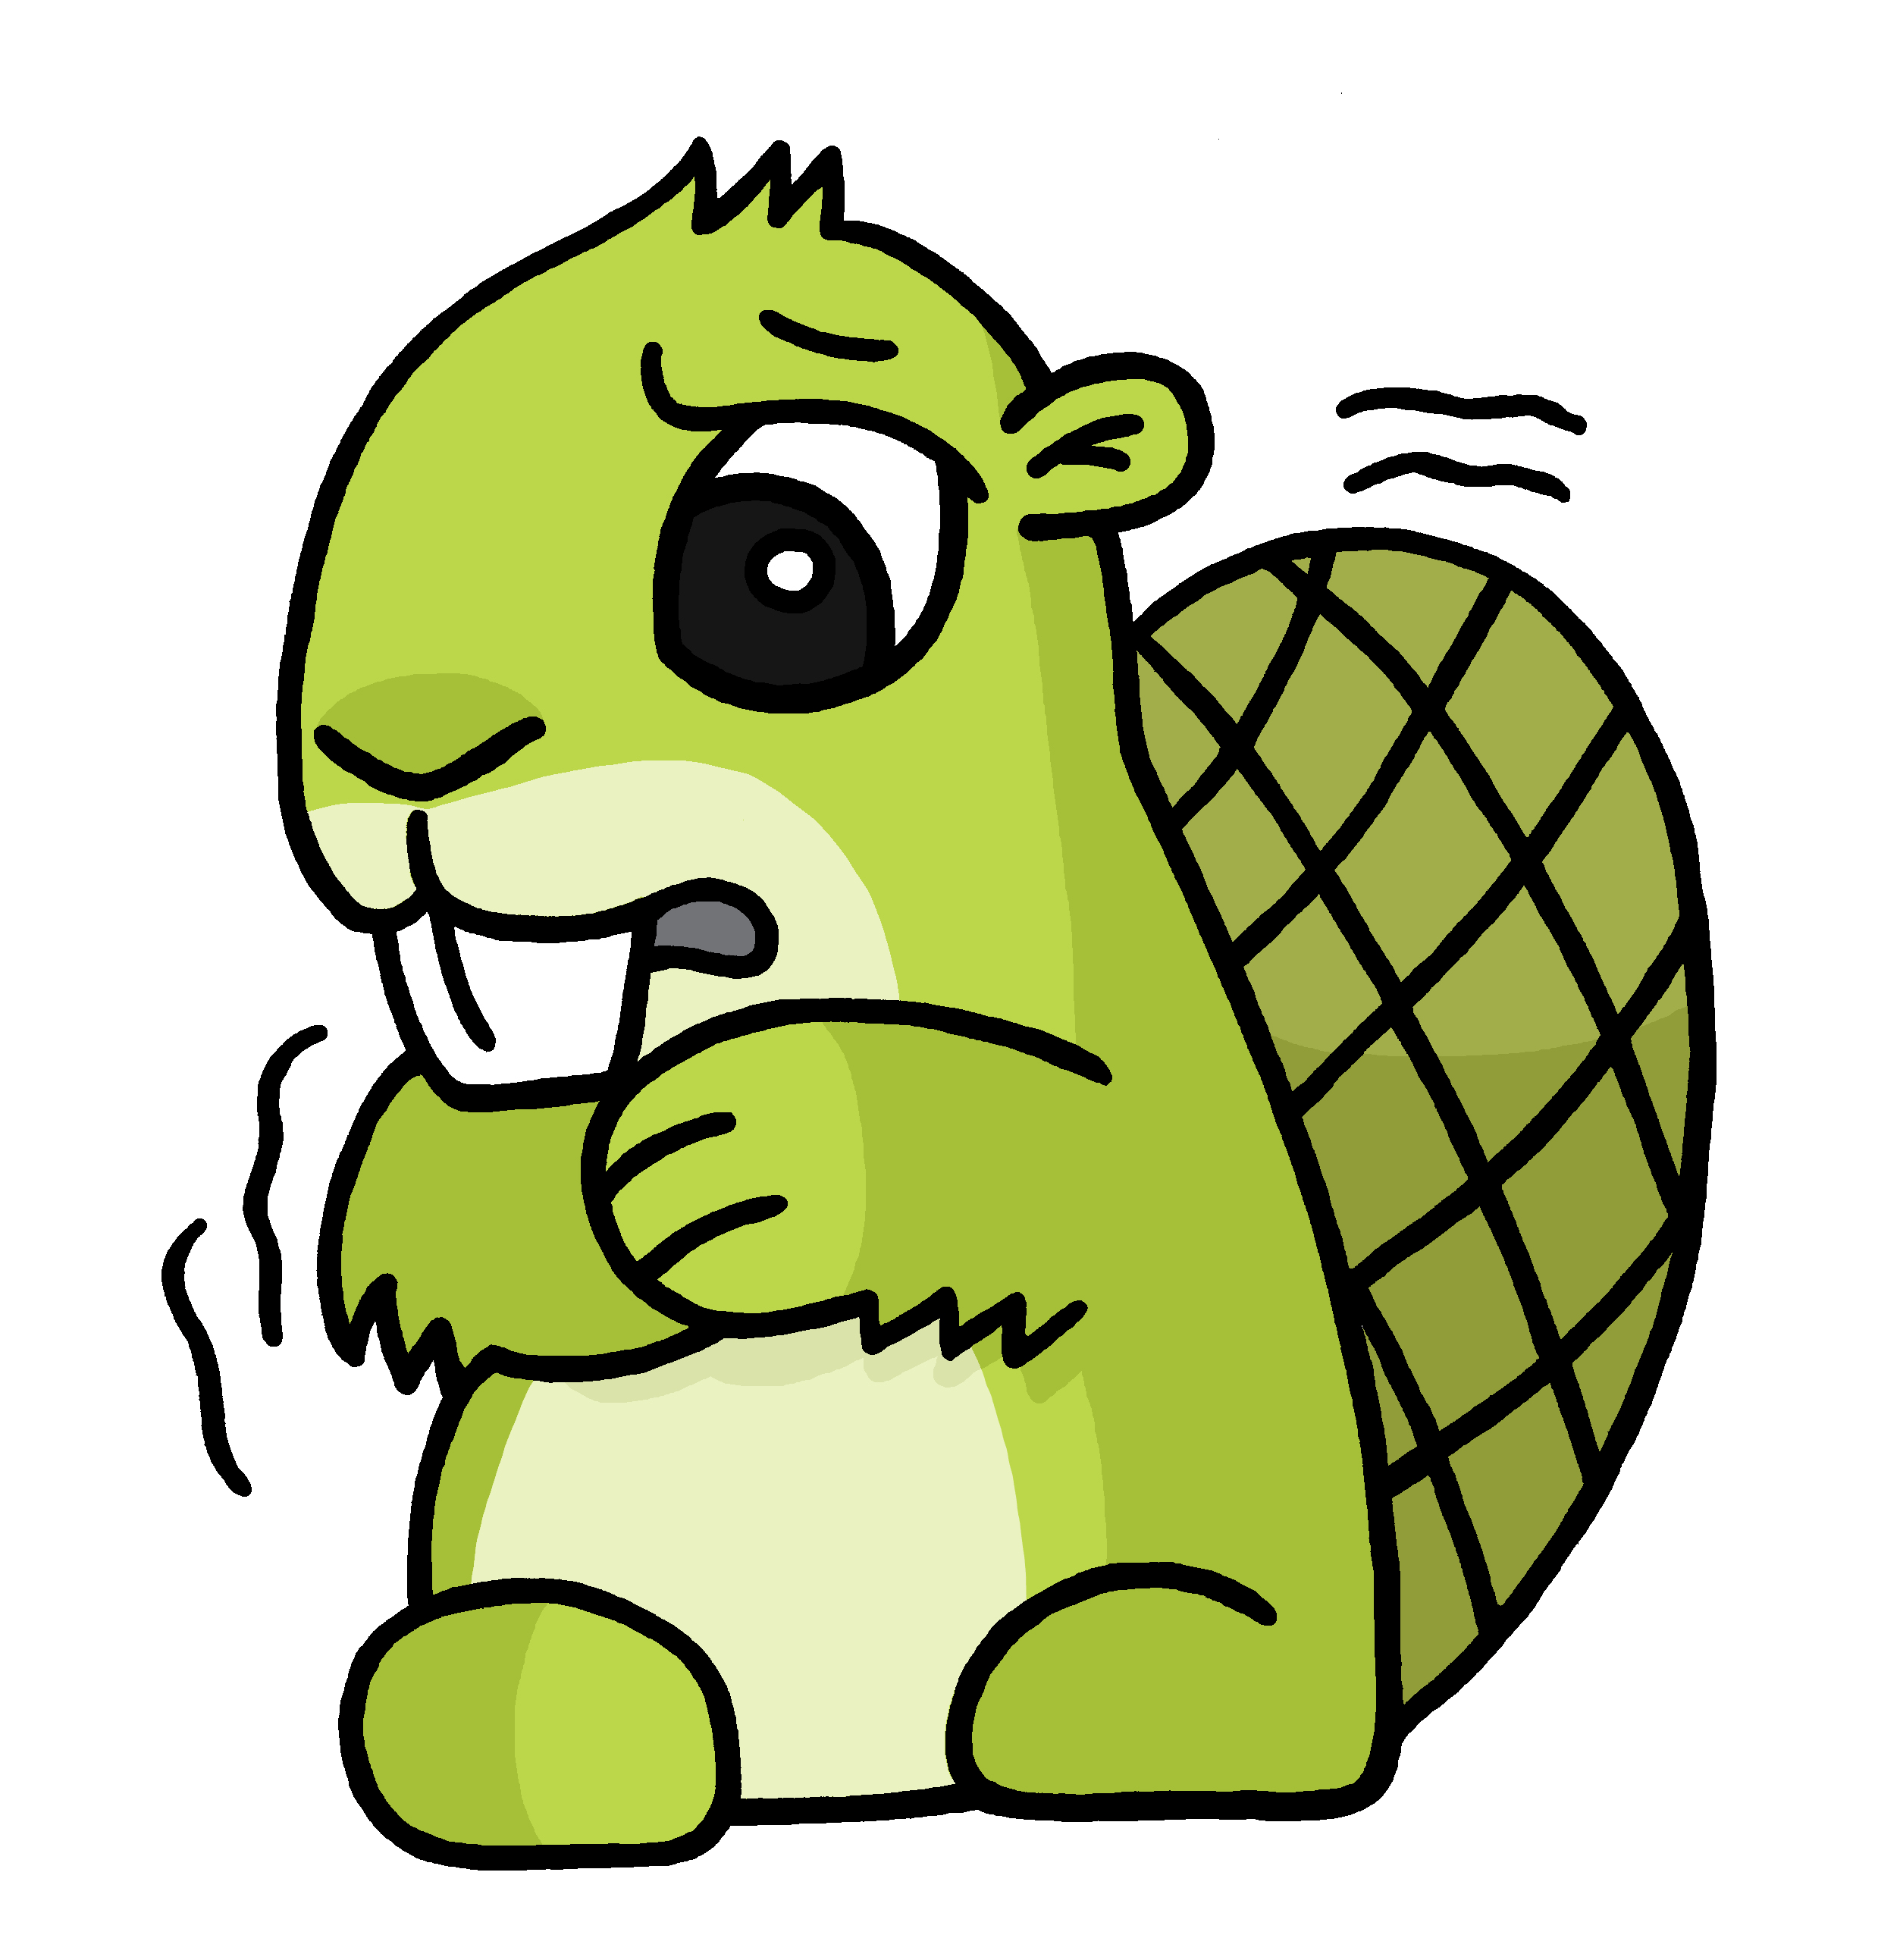 royalty free Fear clipart. Extremely creative adsy transparent